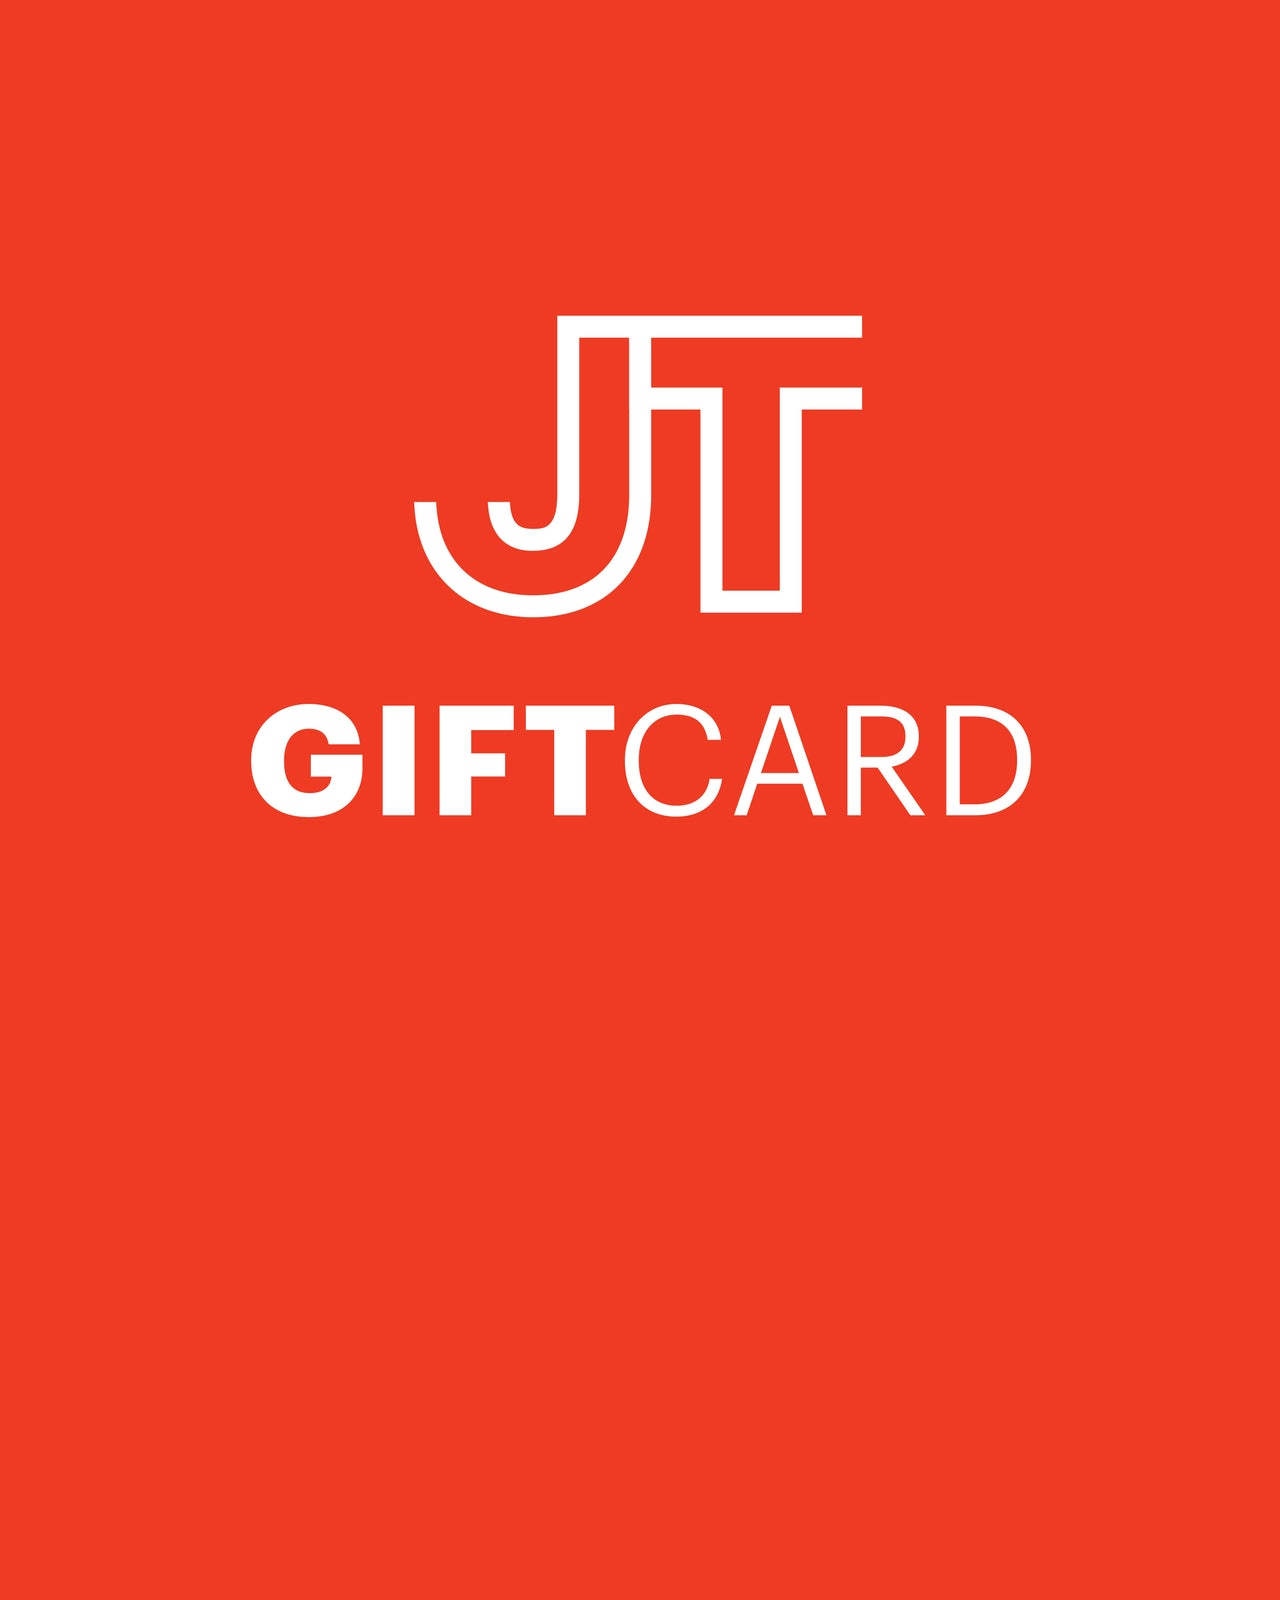 Gift Card - Color: Red | Red